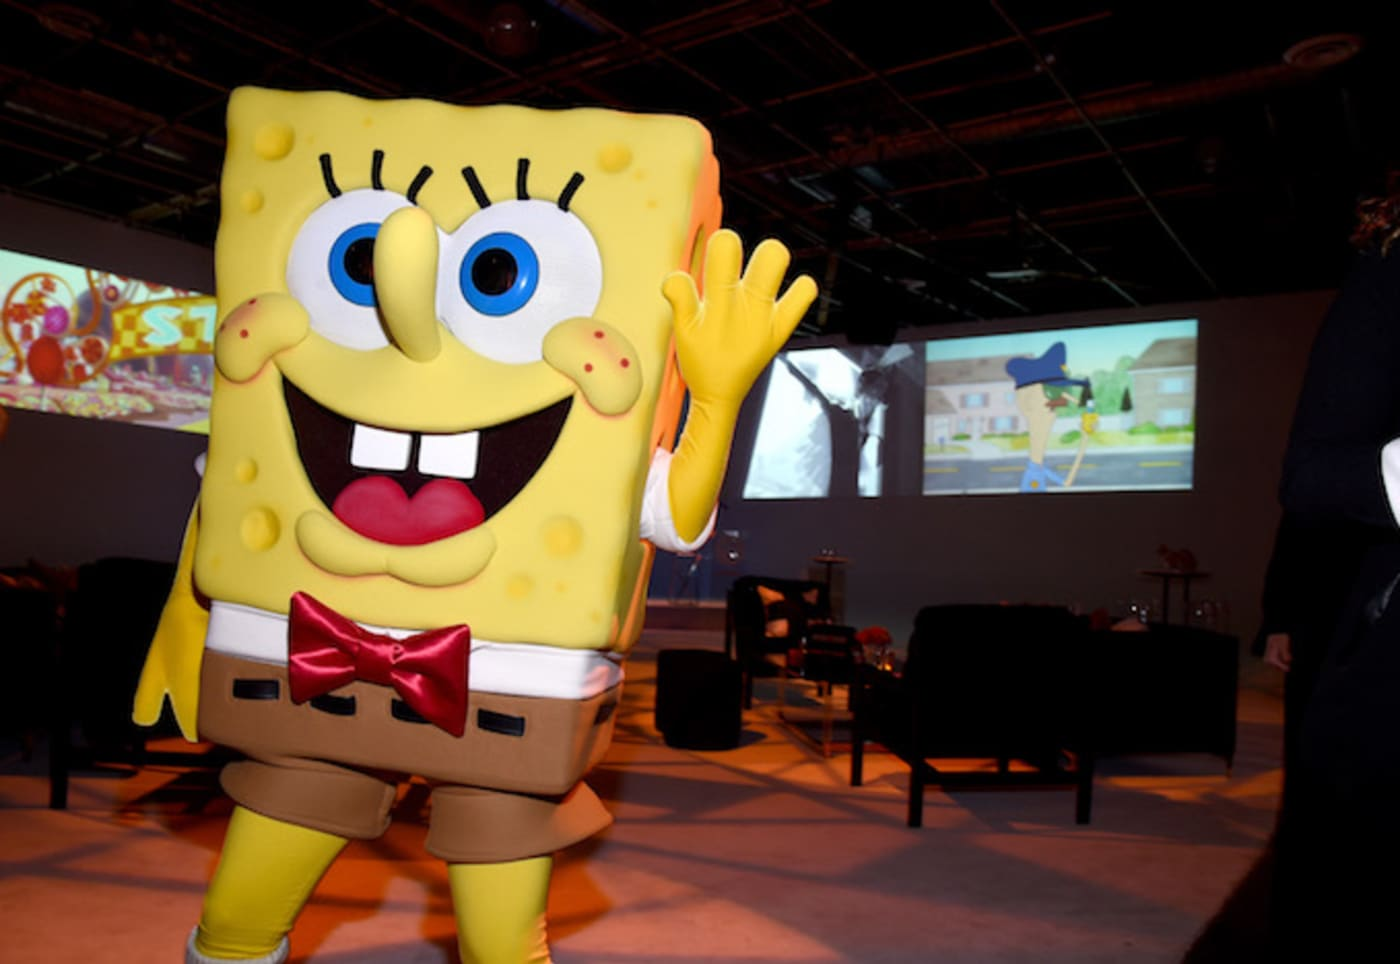 WHO lives in a pineapple under the sea???